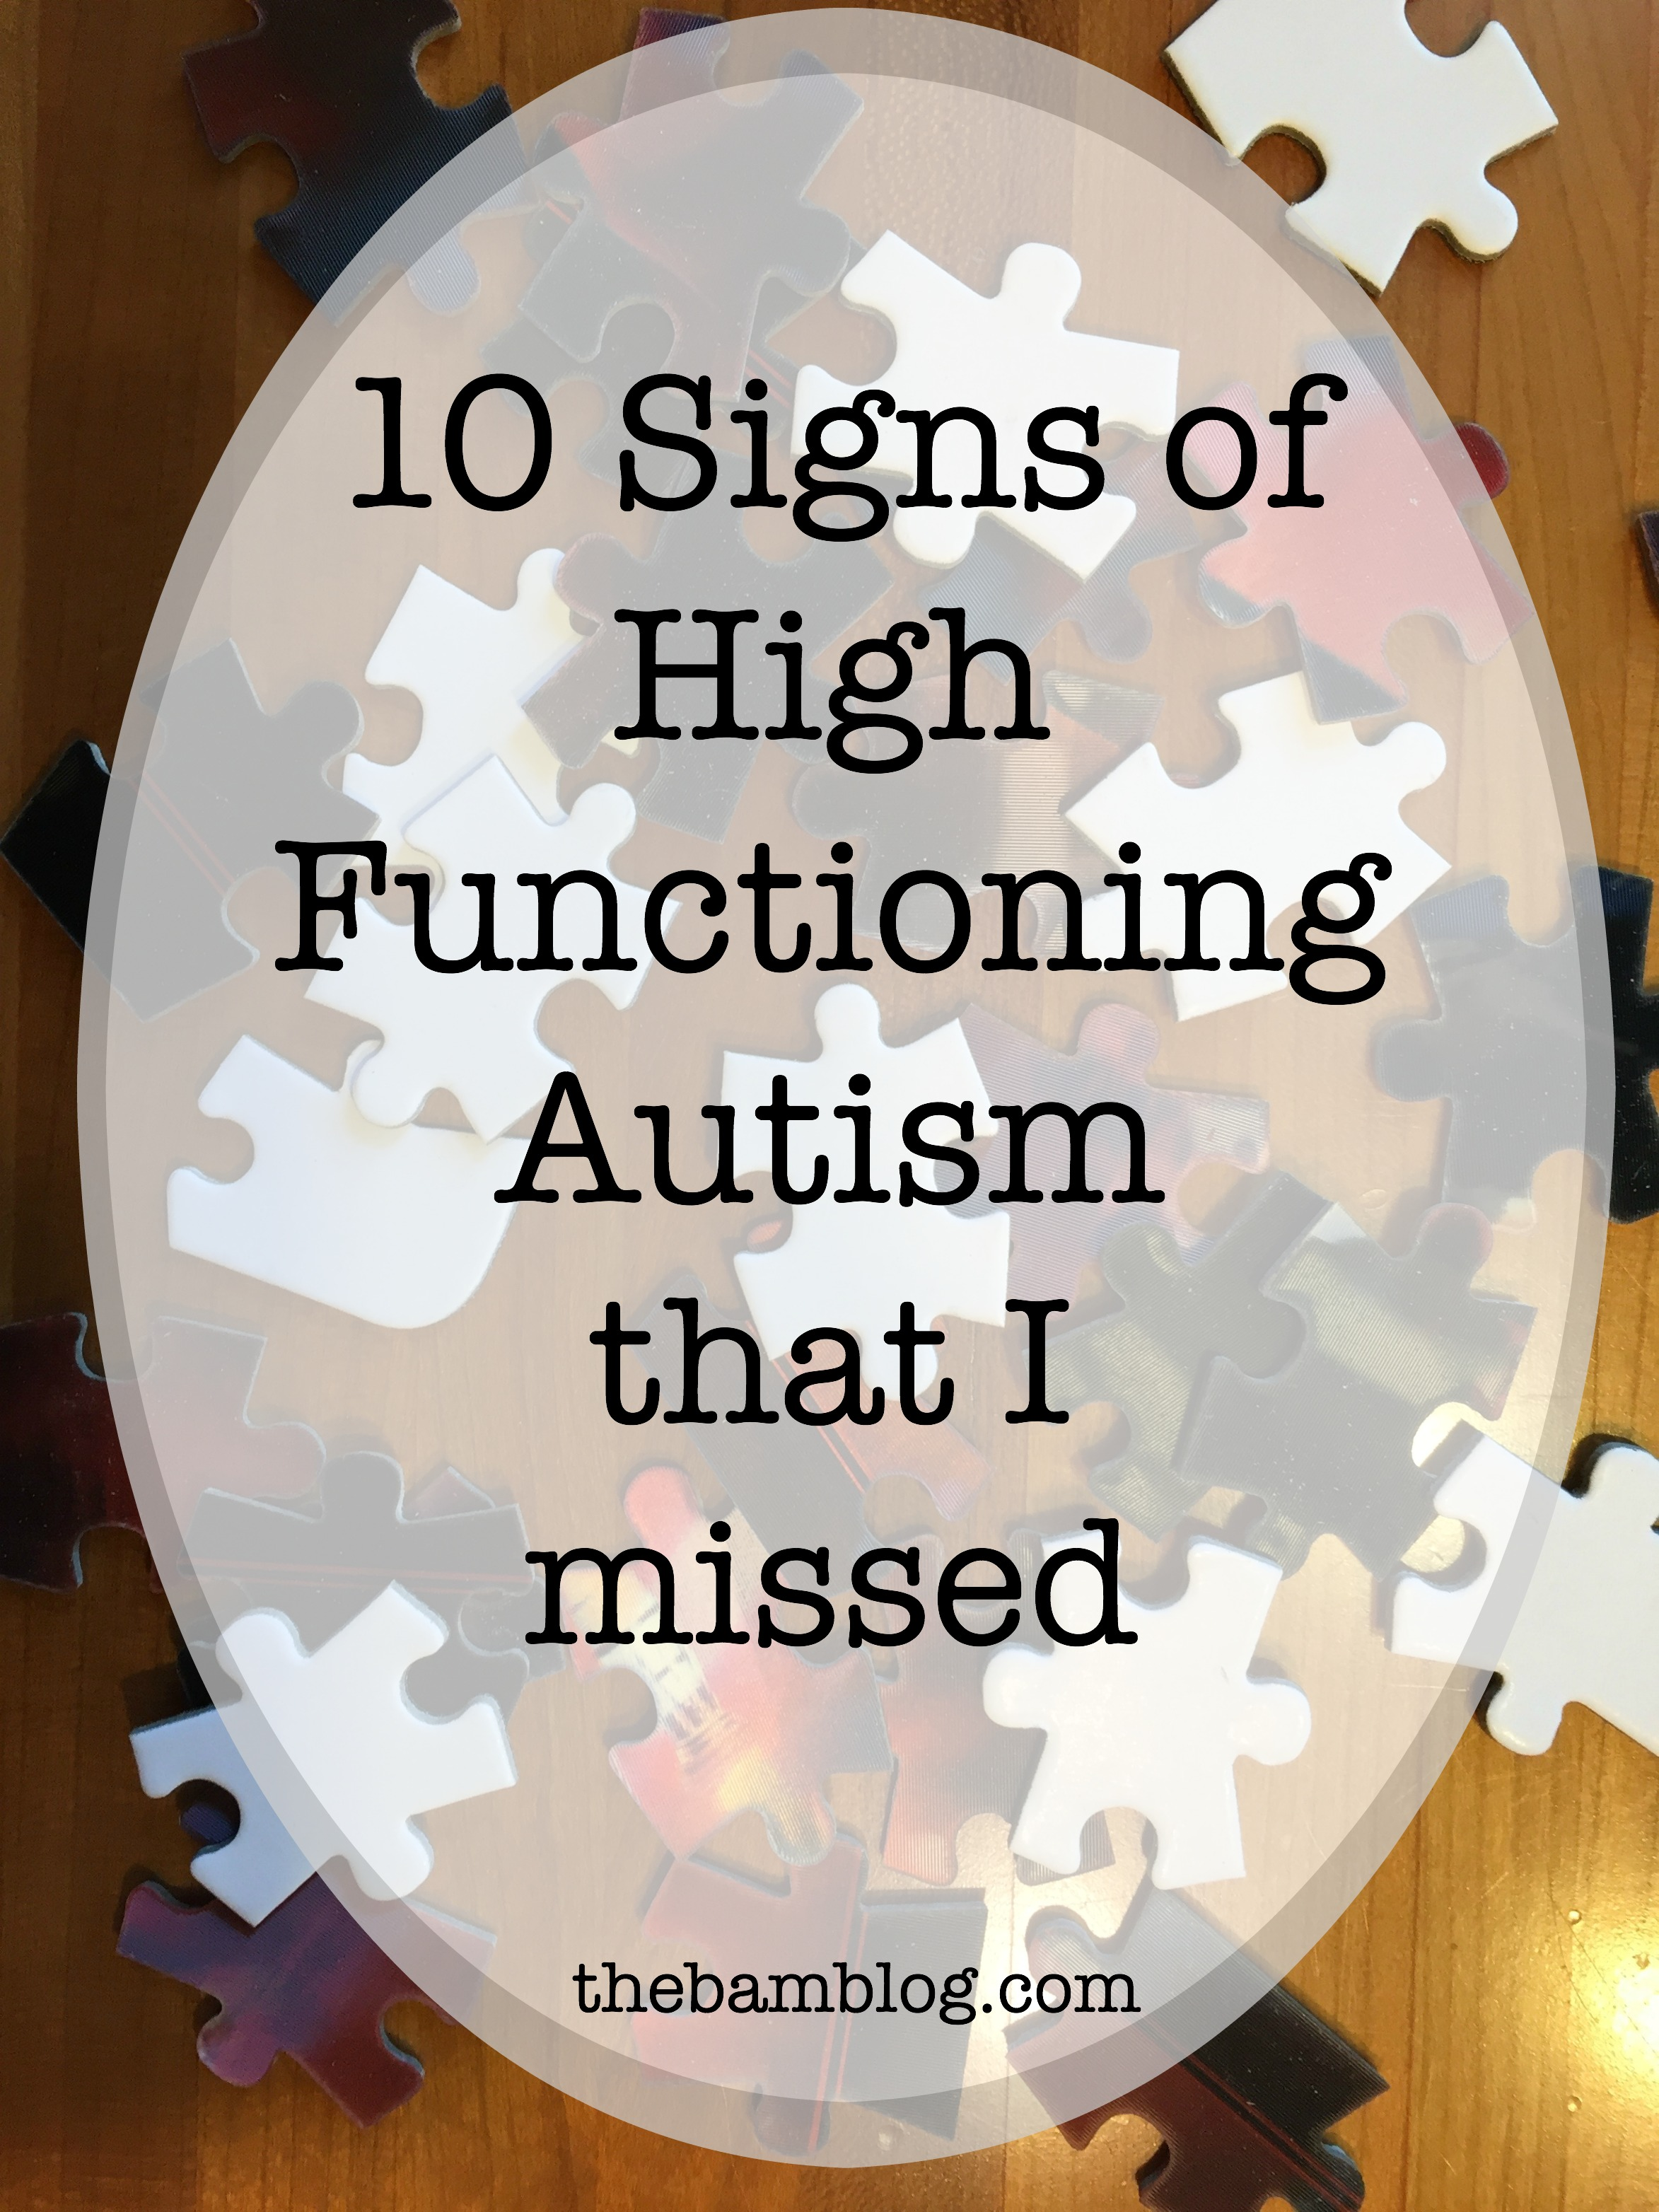 Signs of High Functioning Autism